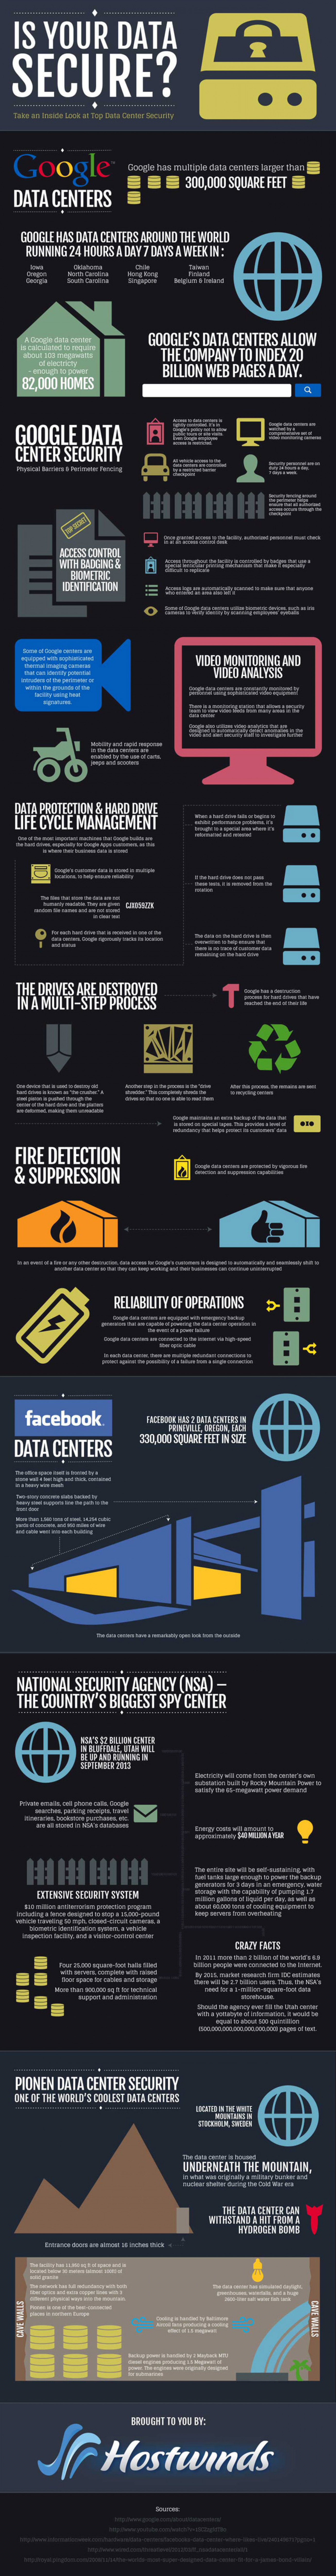 How Secure Is Your Personal Data in Light of PRISM? Infographic